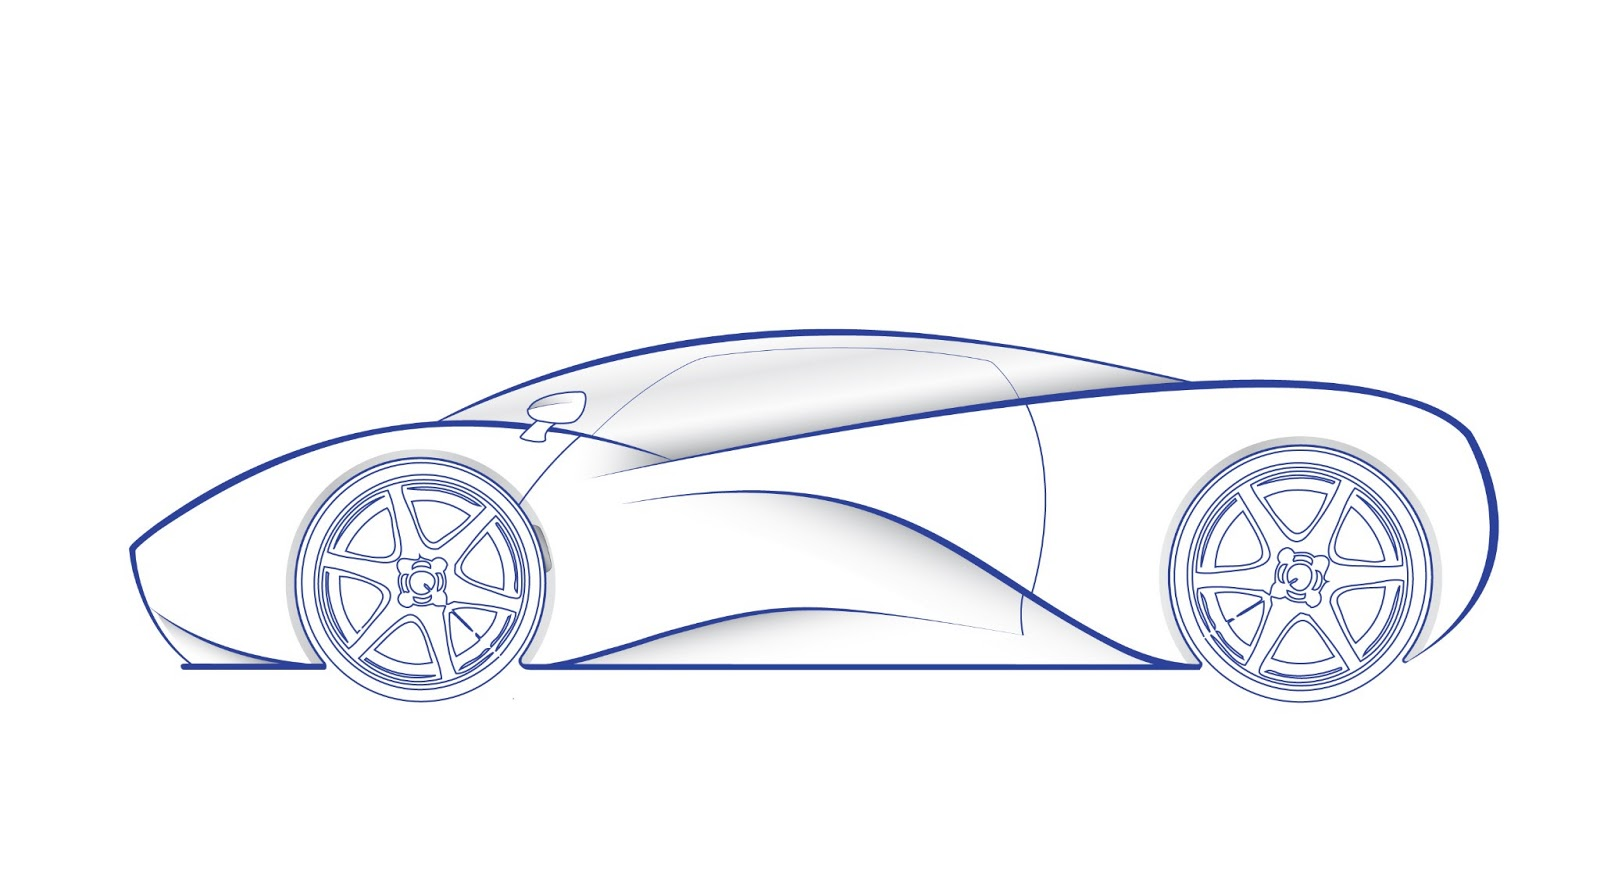 This Is My Attempt To Design A Supercar I